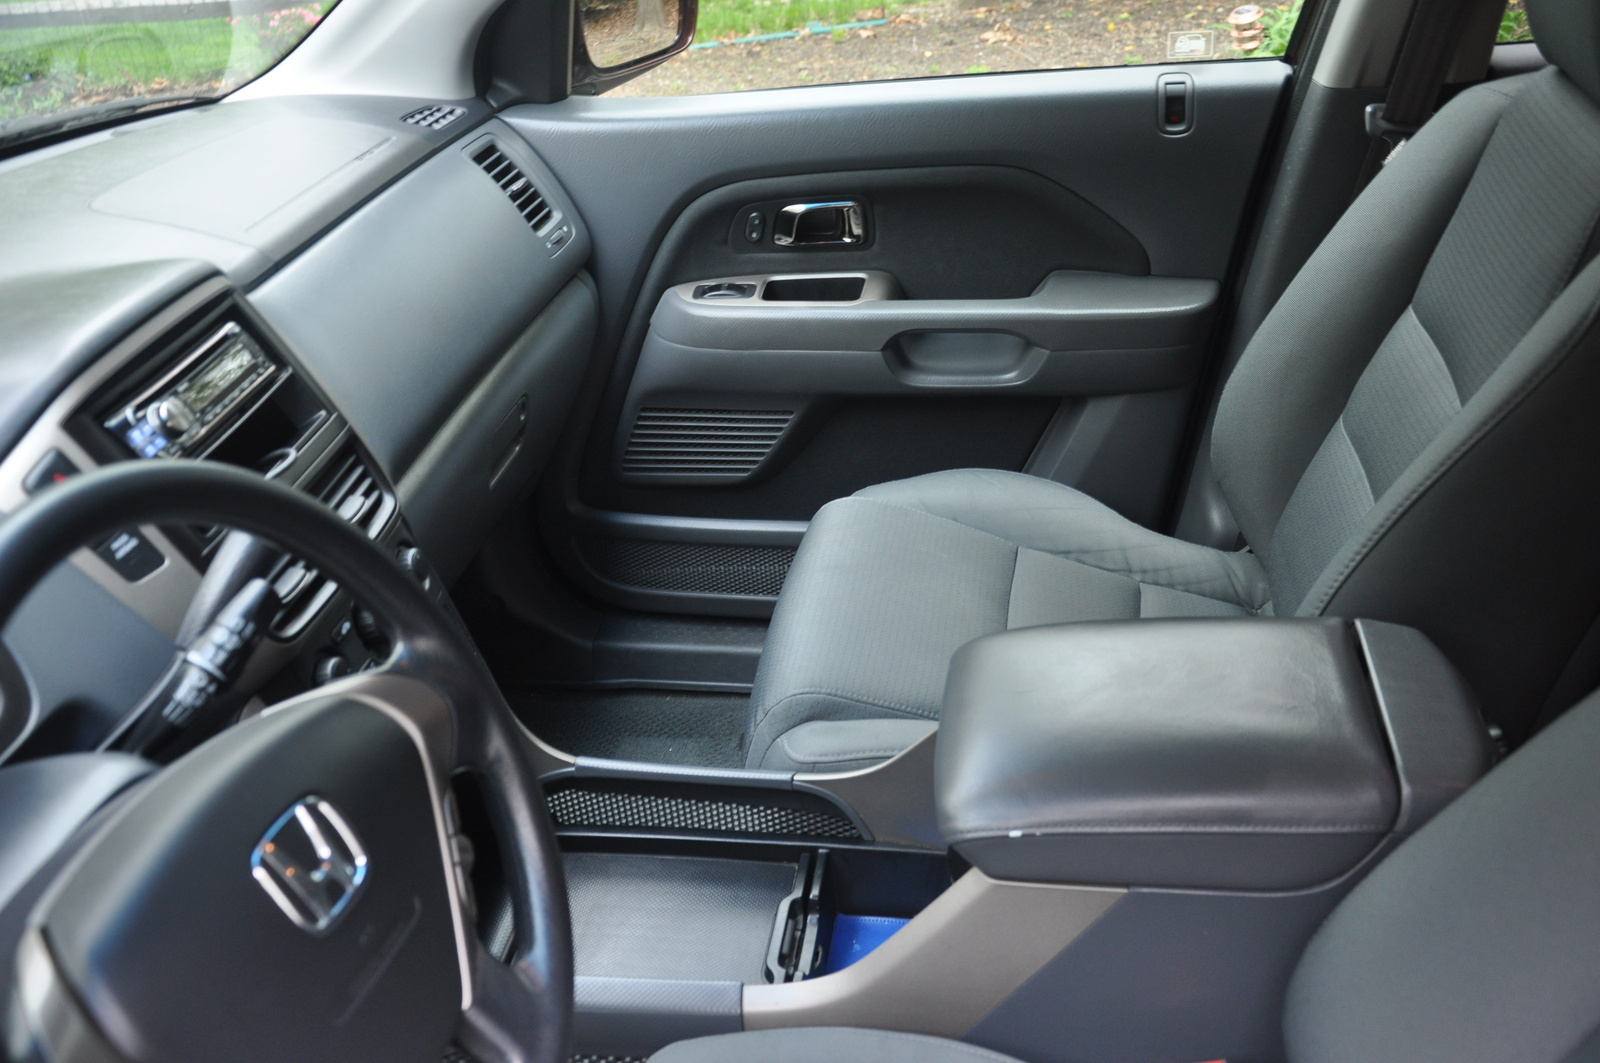 Image B furthermore Nissan Rogue Large also Dsc furthermore Toyota Corolla also Toyota Venza Limited Awd Pic X. on 2006 toyota highlander interior